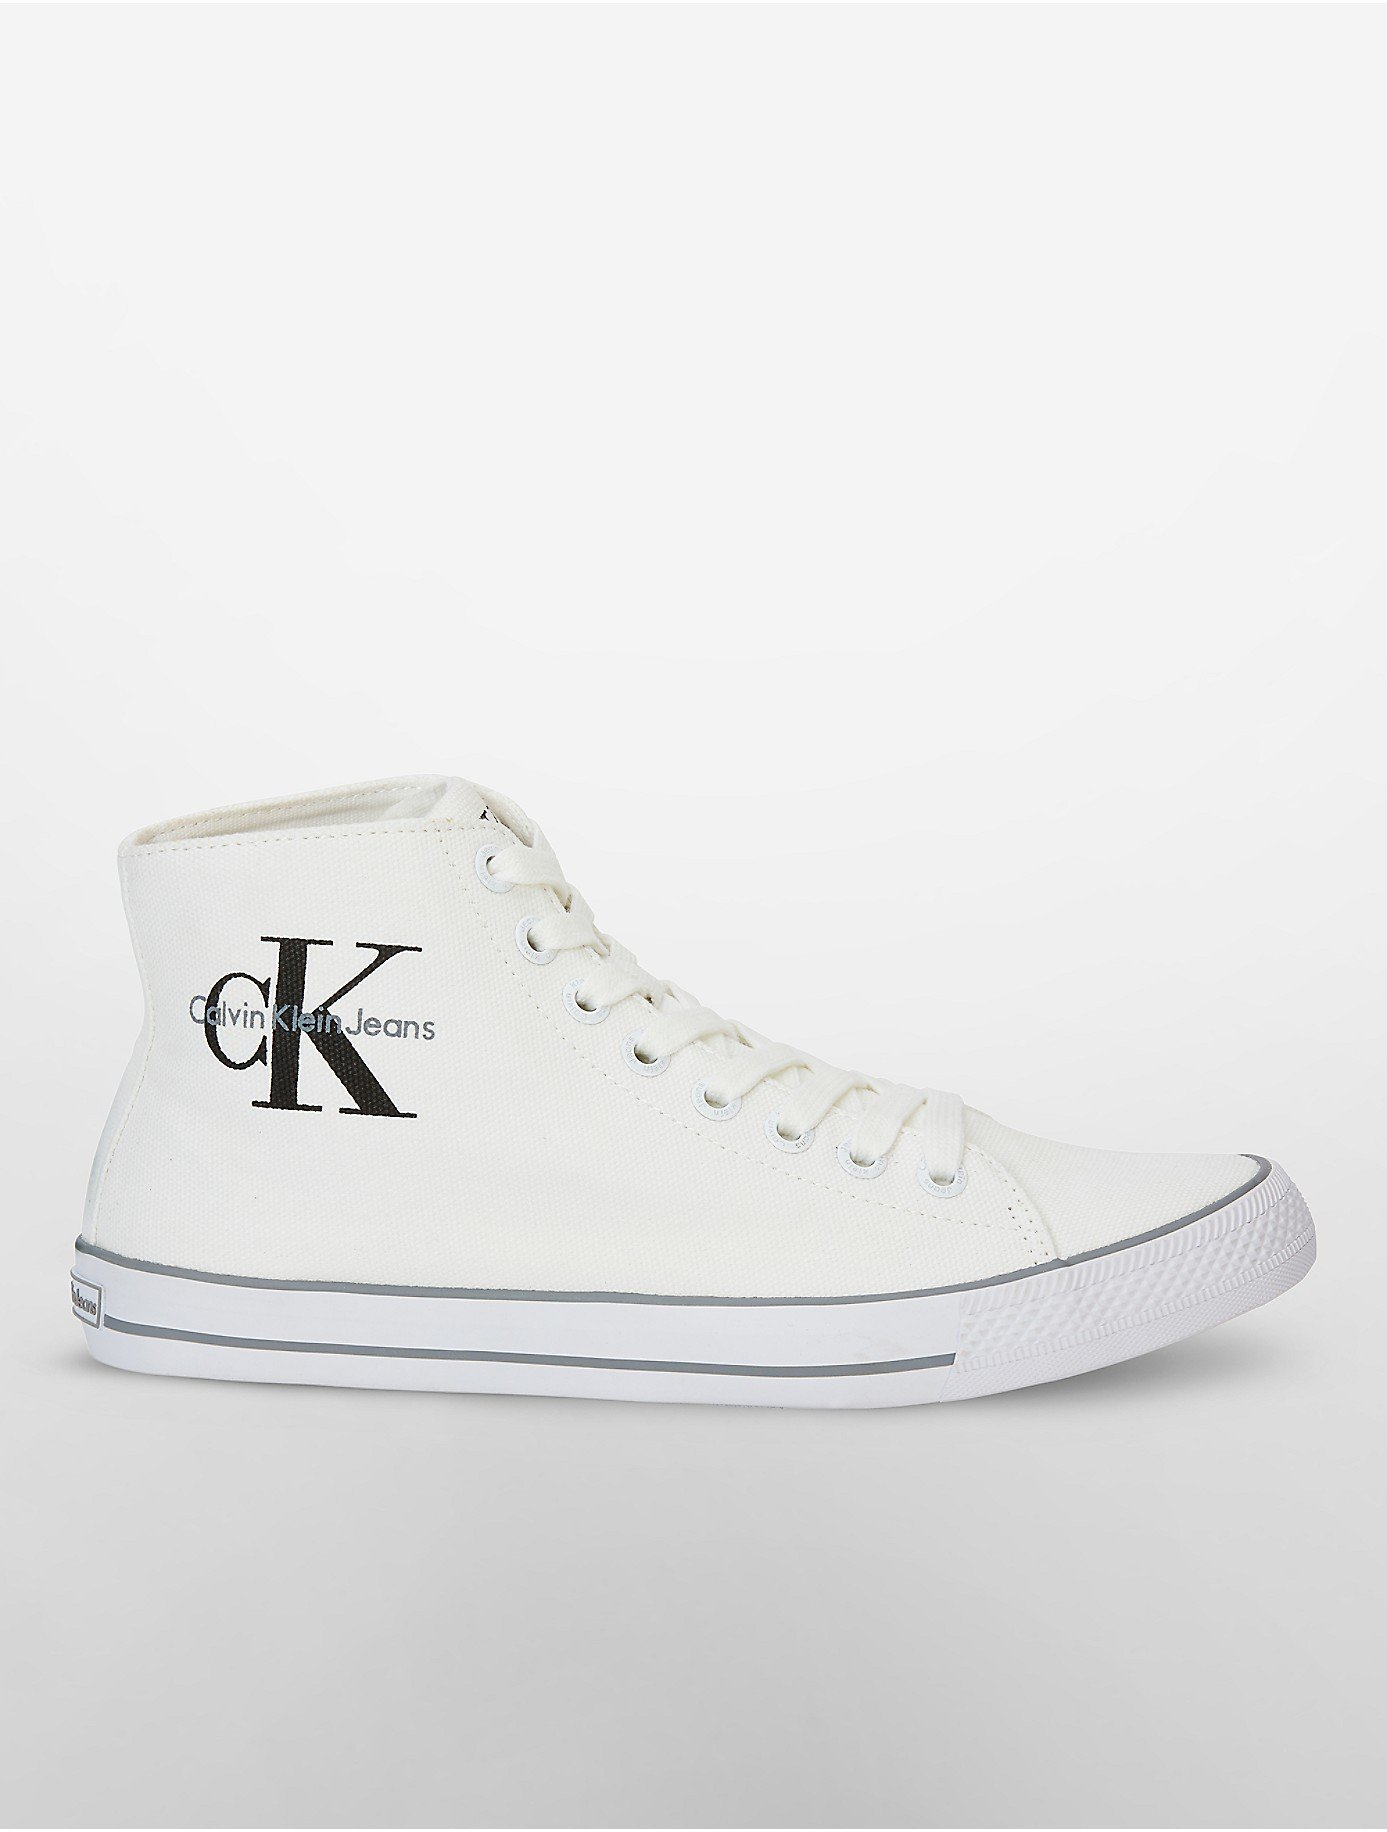 calvin klein jeans ozzy high top canvas sneaker in white. Black Bedroom Furniture Sets. Home Design Ideas